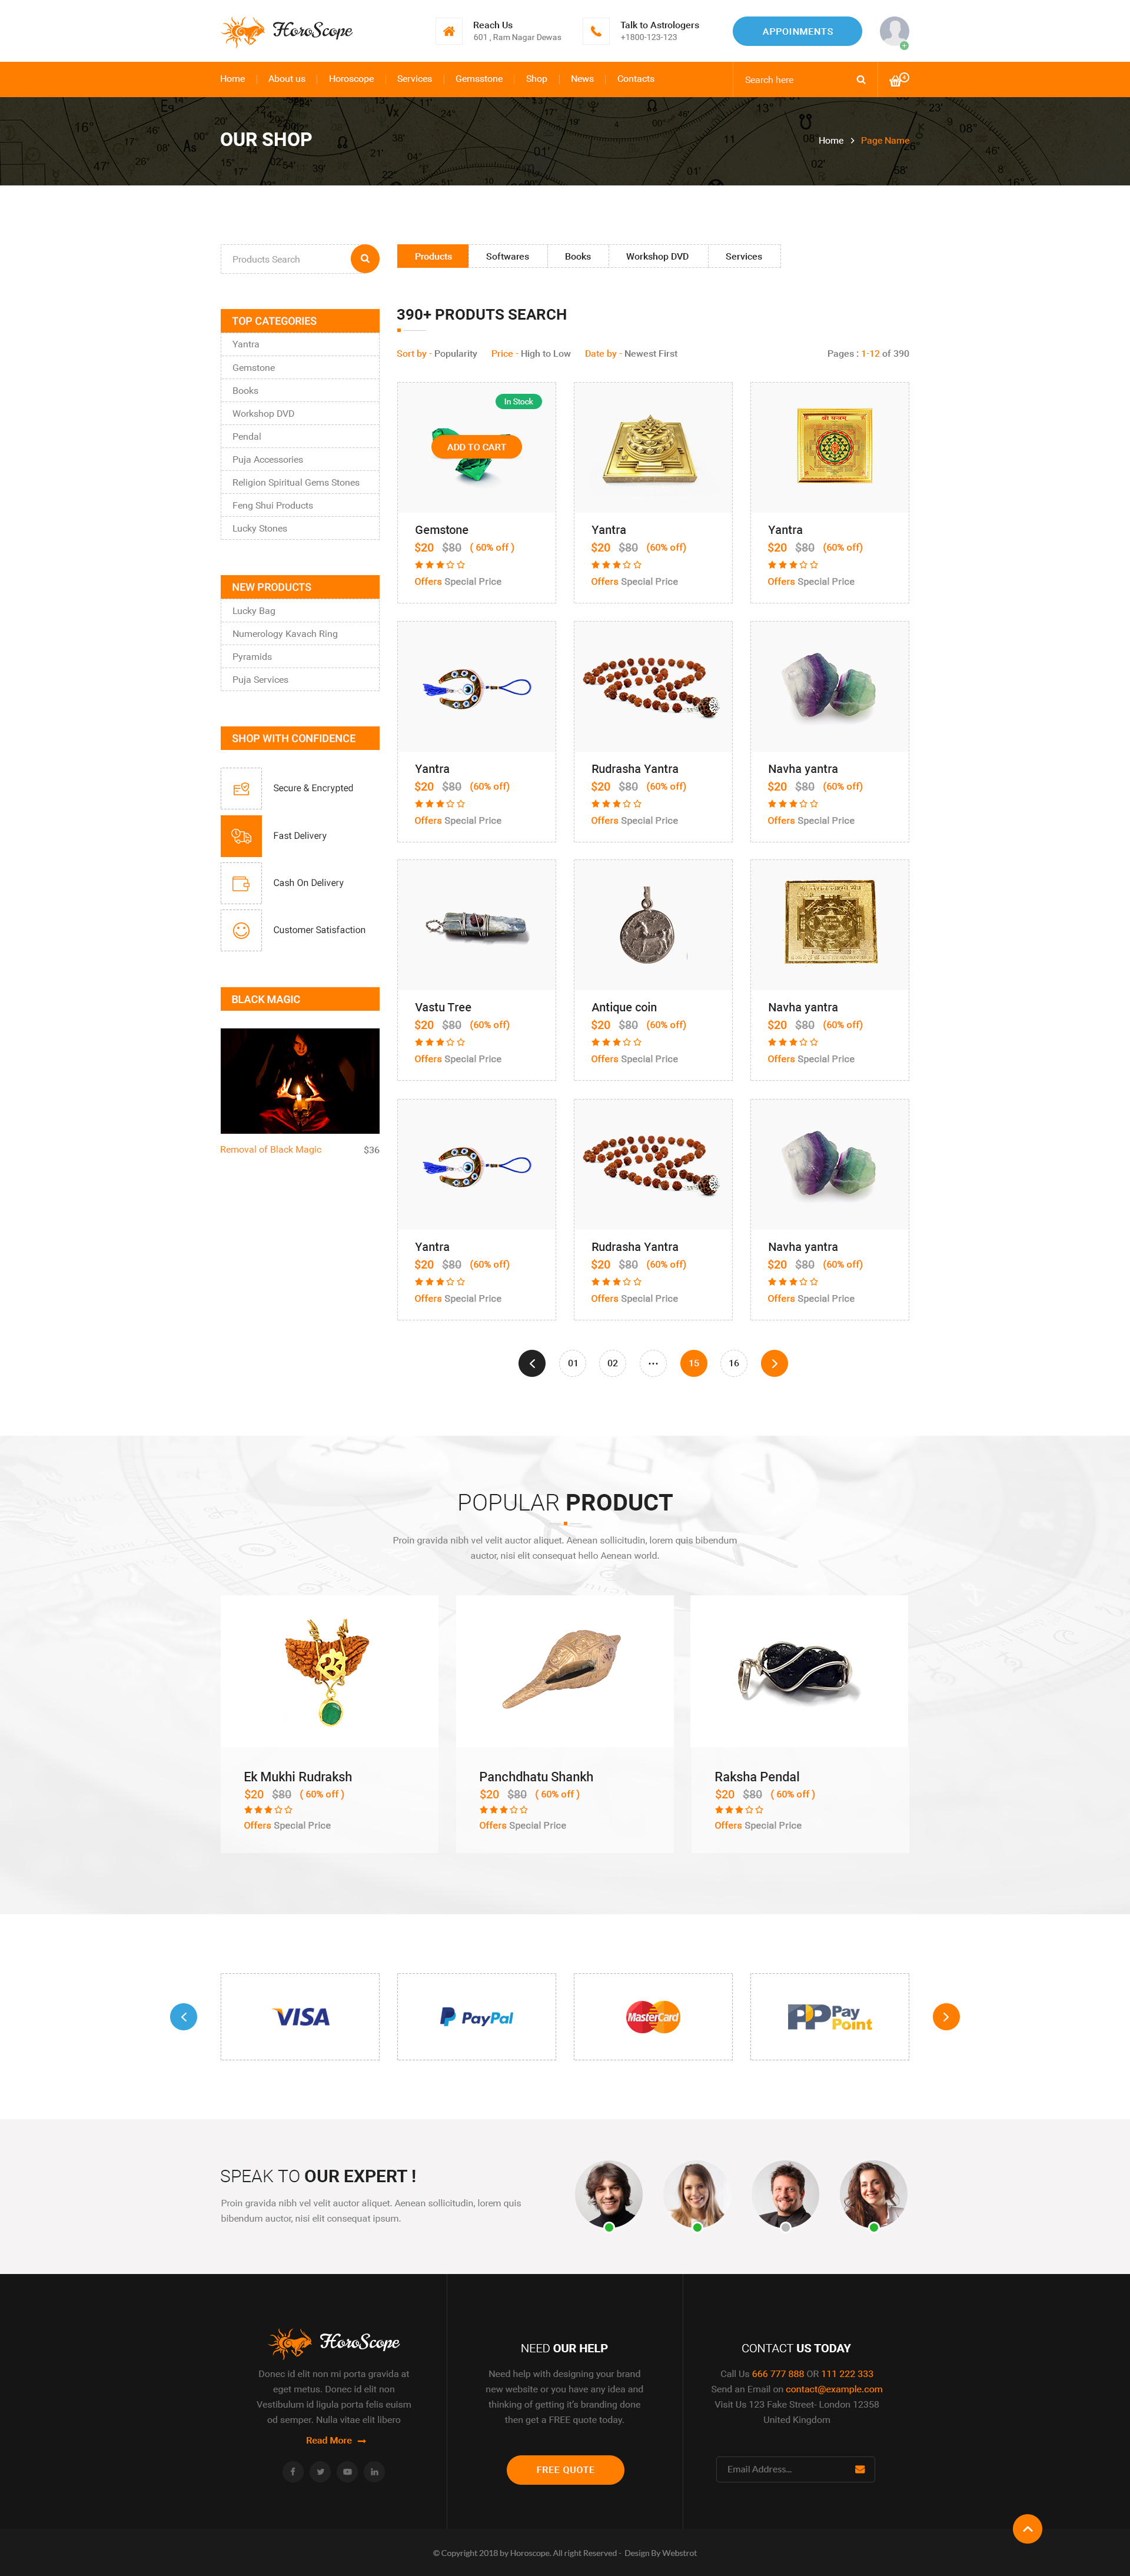 Horoscope - Astrology and Numerology Multipurpose PSD Template